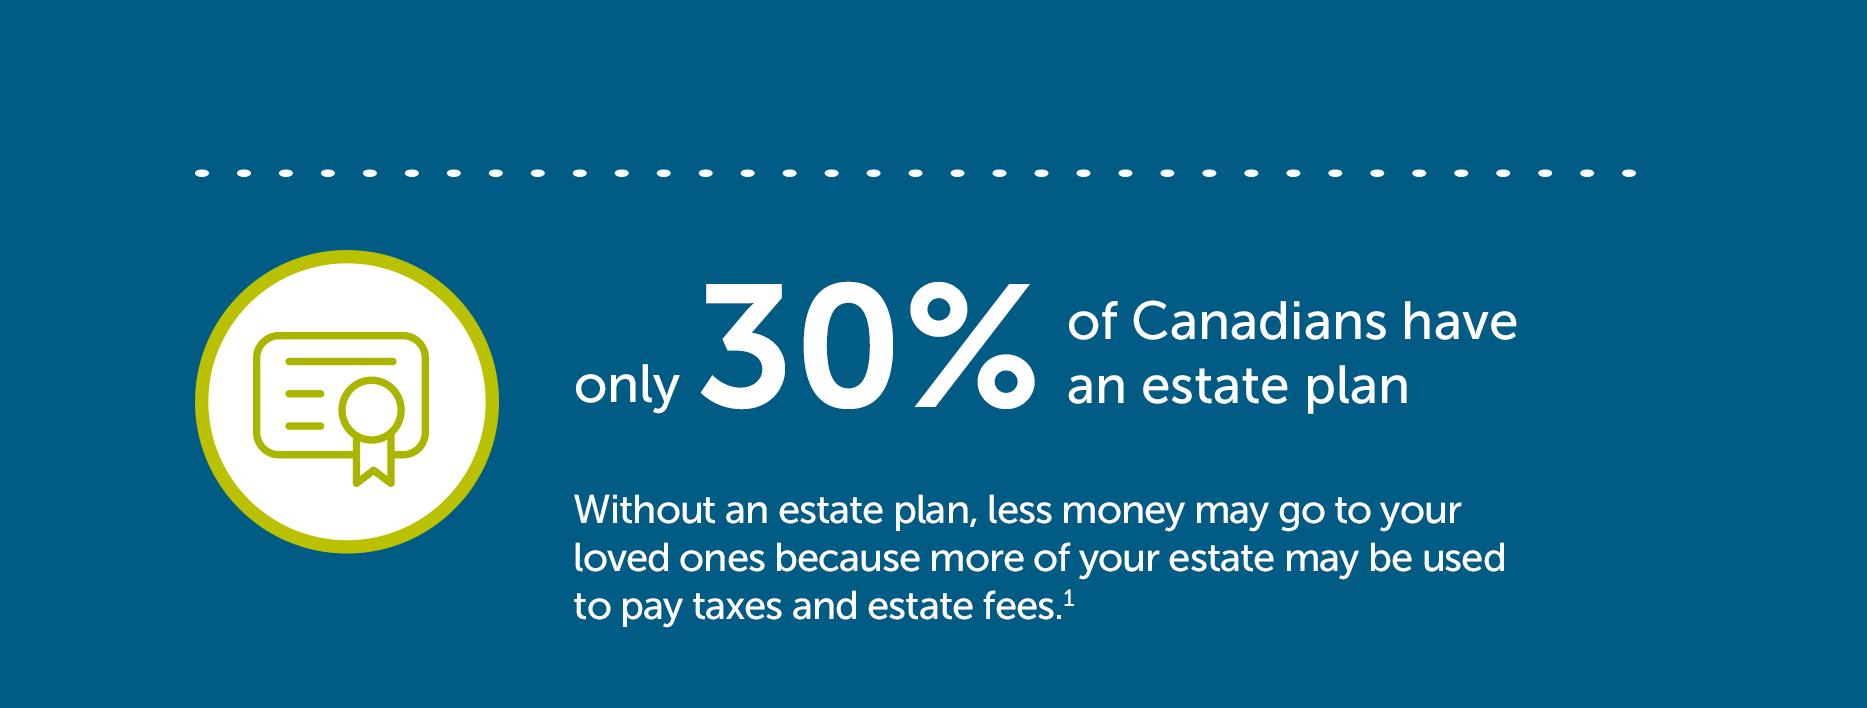 30% of Canadians have an estate plan statistic